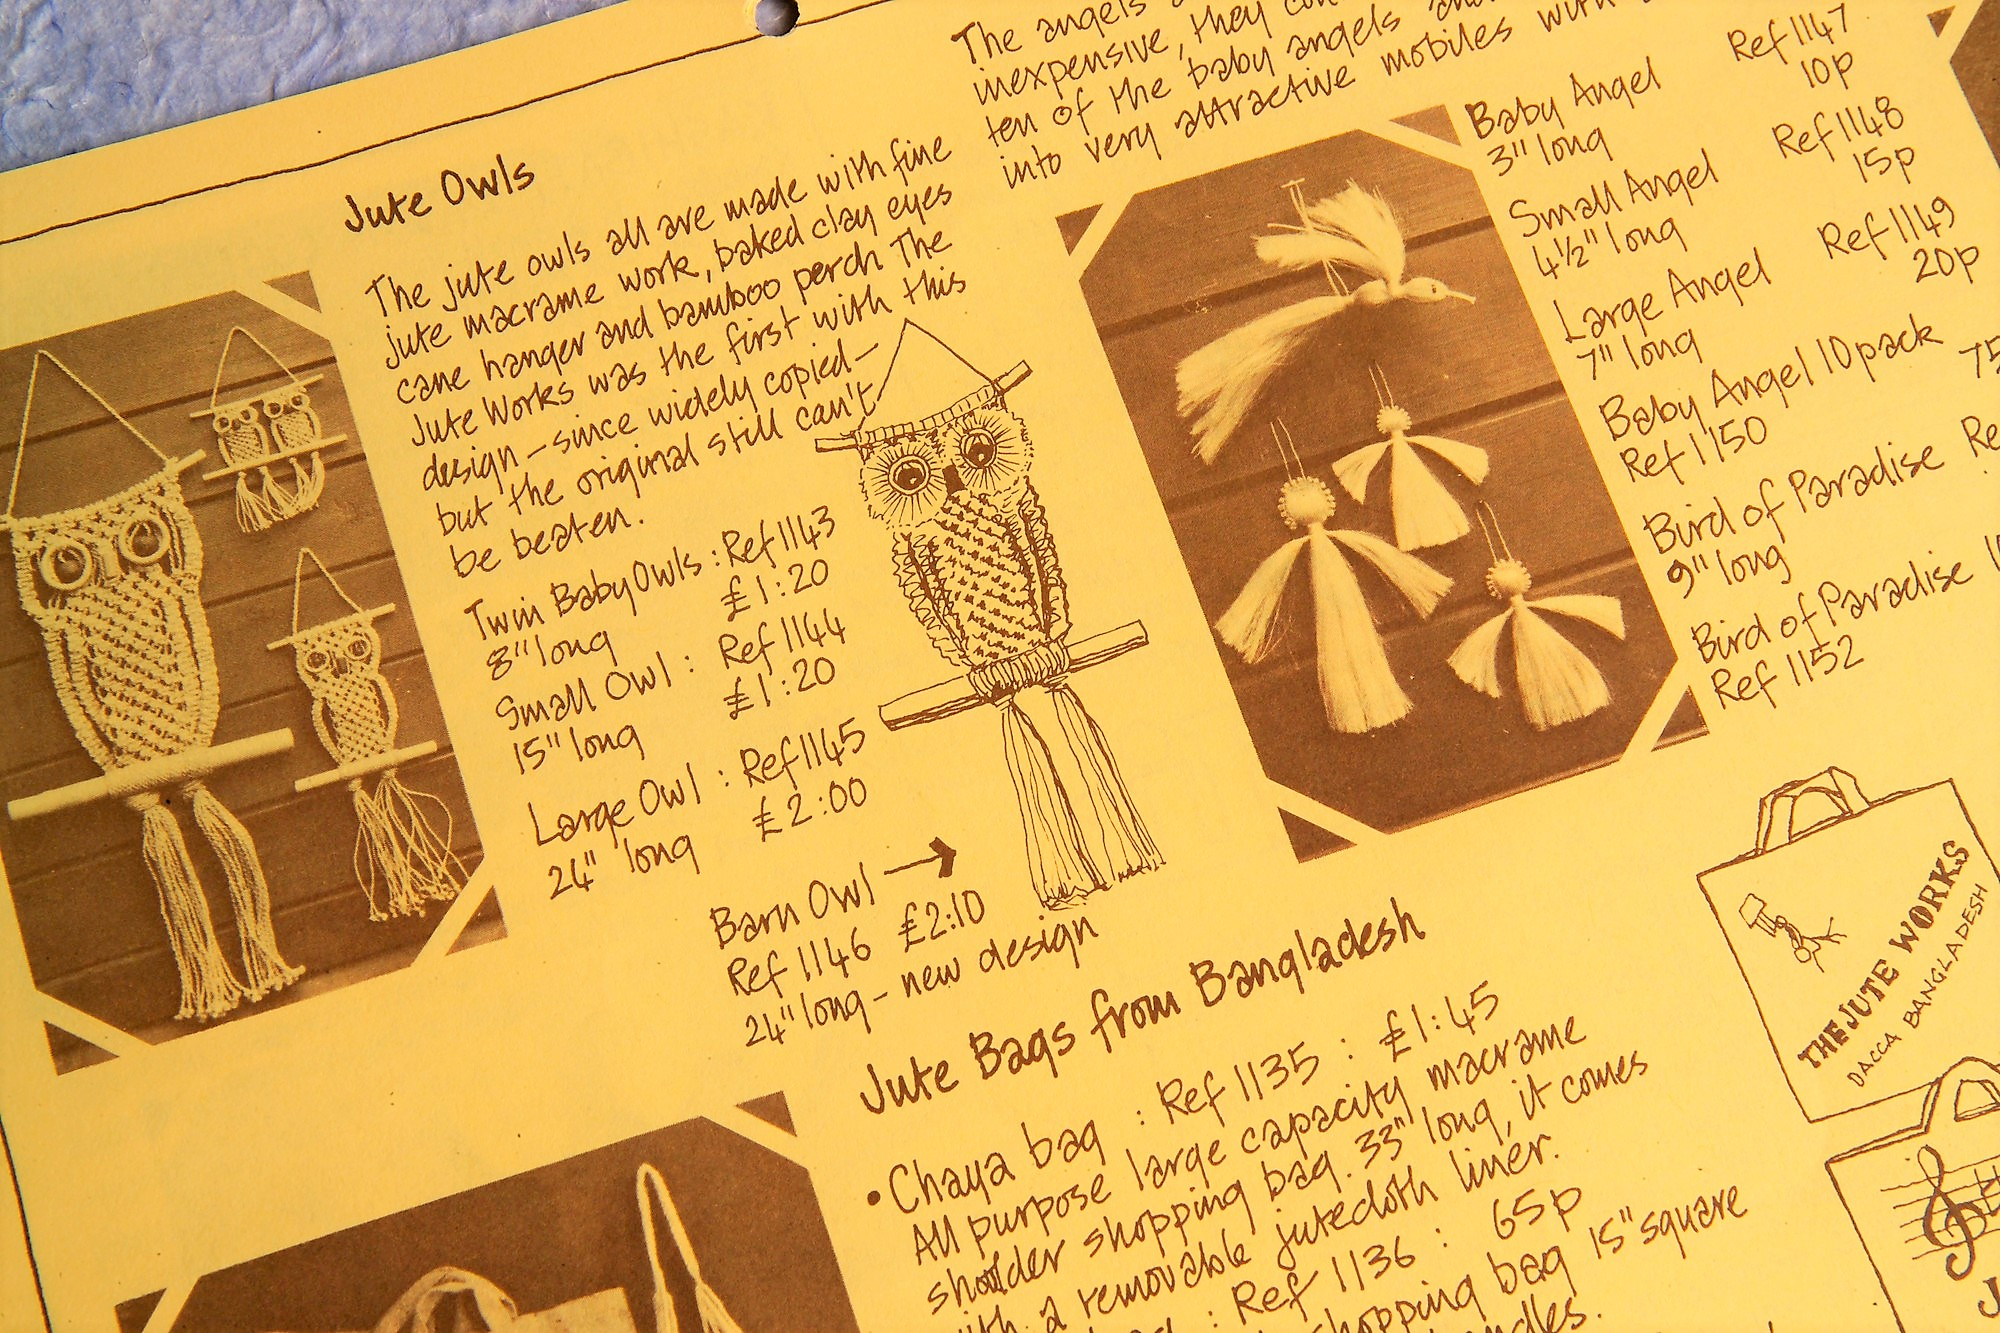 Traidcraft began selling fairly trading jute products from Bangladesh in our hand-drawn 1979 catalogue